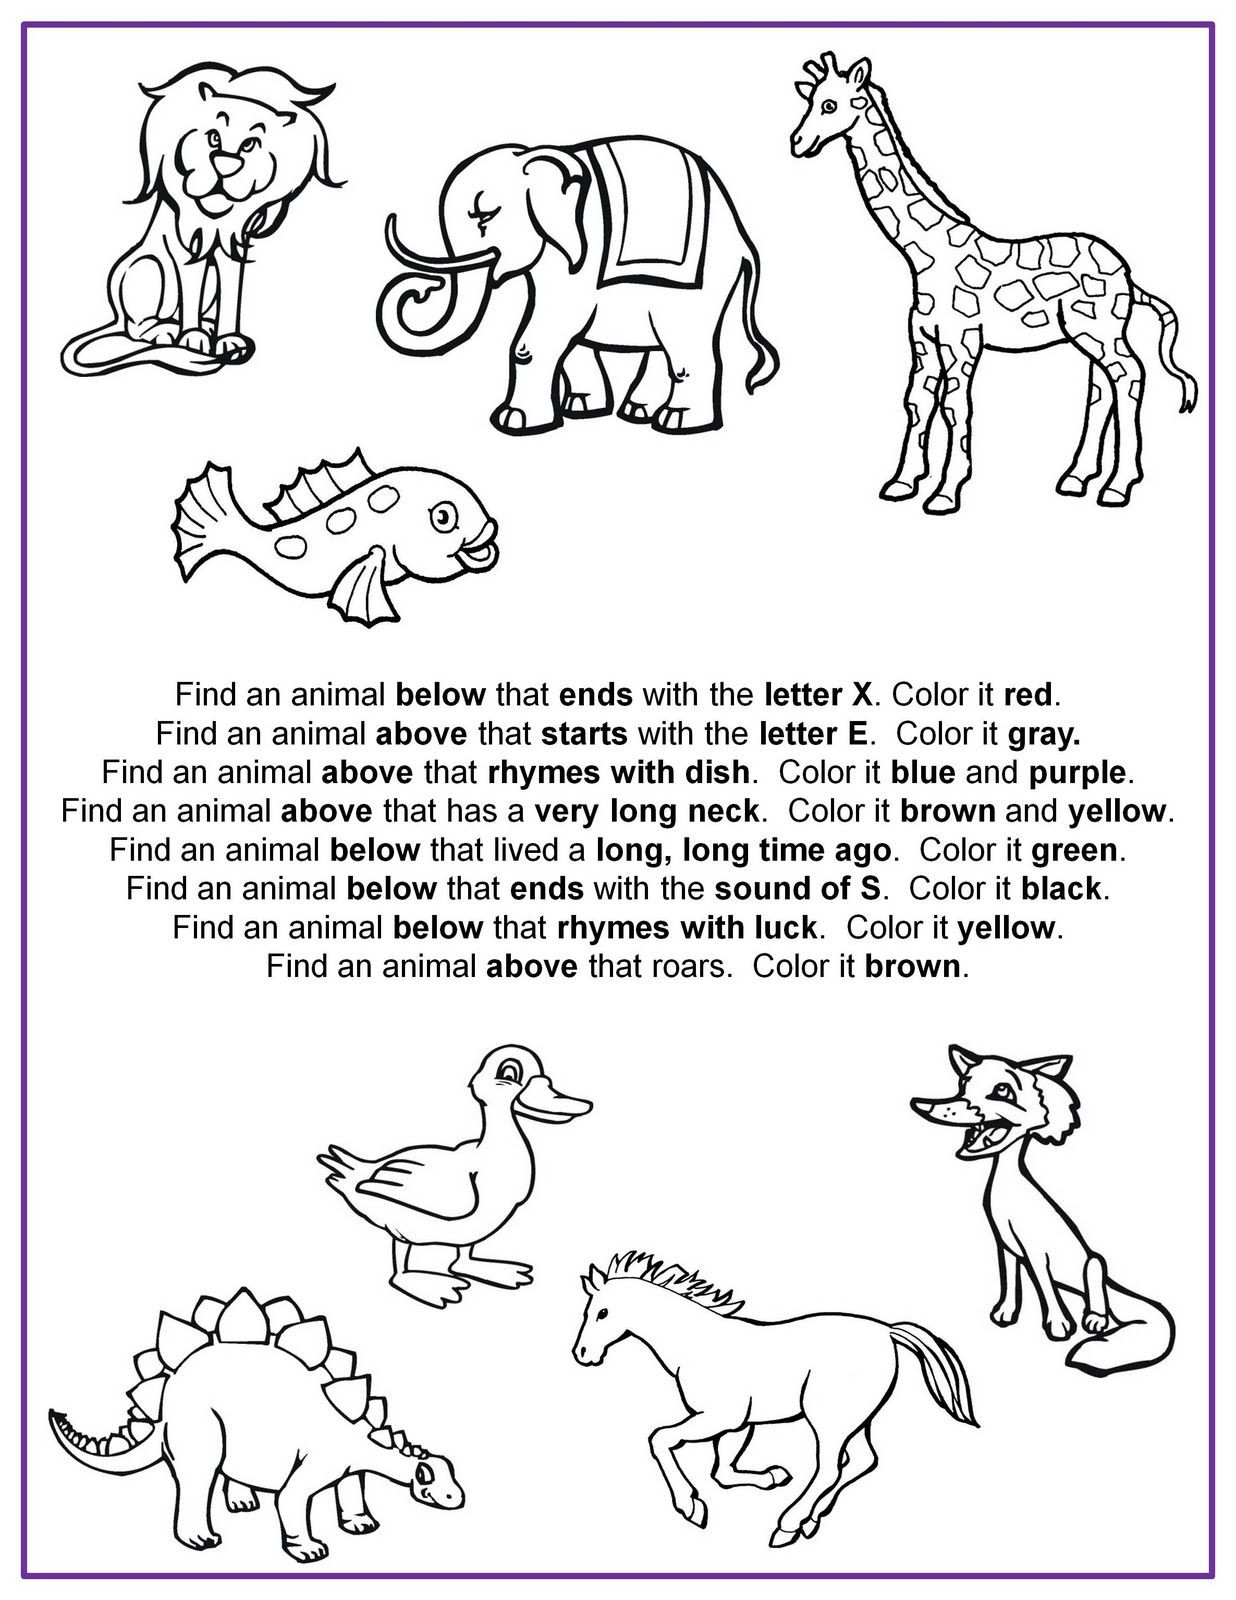 Printable Following Directions Worksheets Following Directions Worksheets for Kids Tsmusicbox